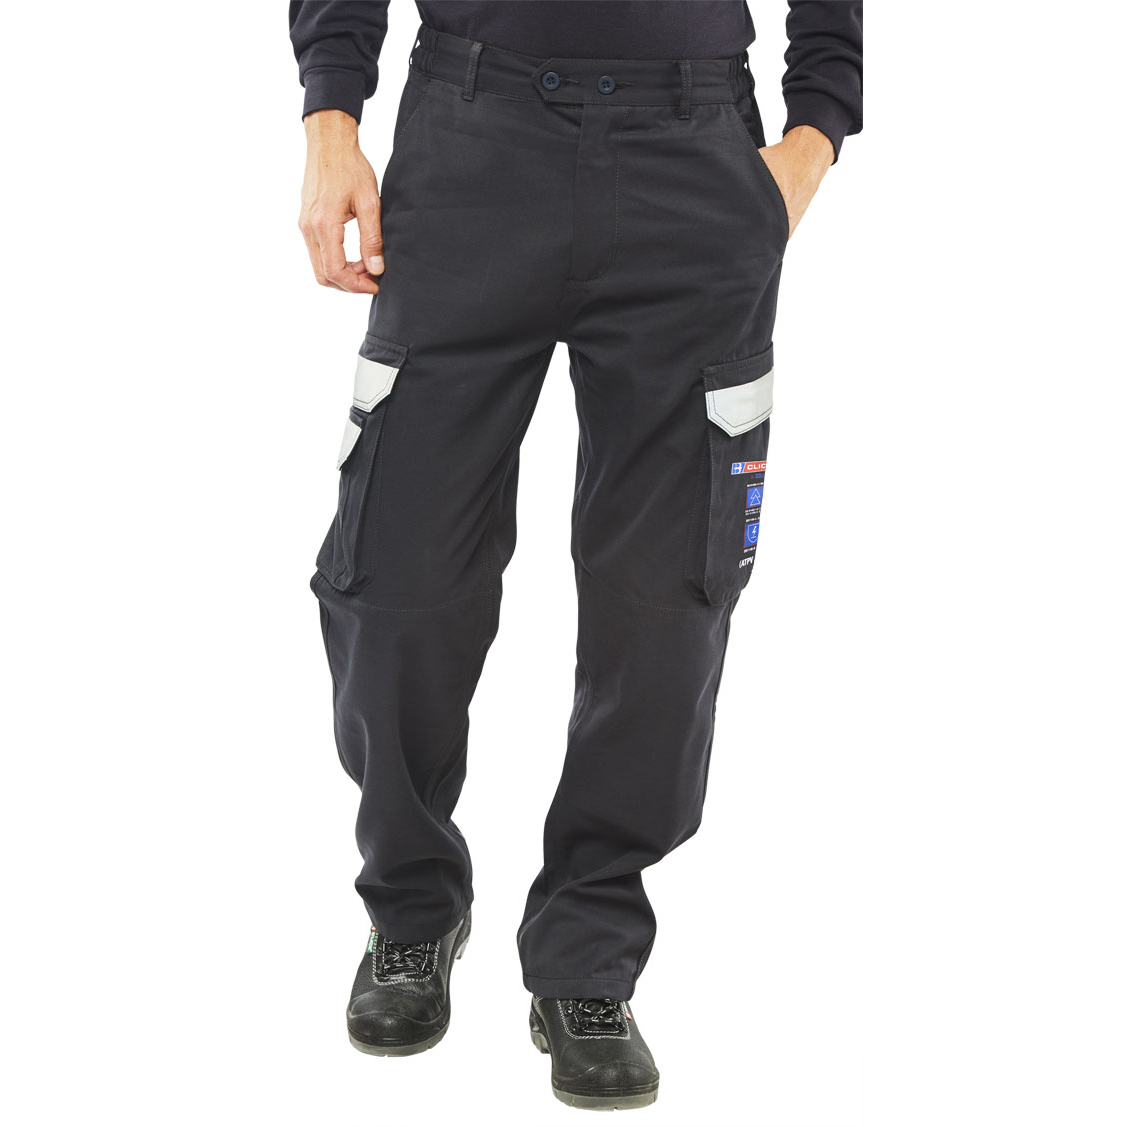 Fire Retardant / Flame Resistant Click Arc Flash Trousers Fire Retardant Navy Blue 40-Short Ref CARC4N40S *Up to 3 Day Leadtime*